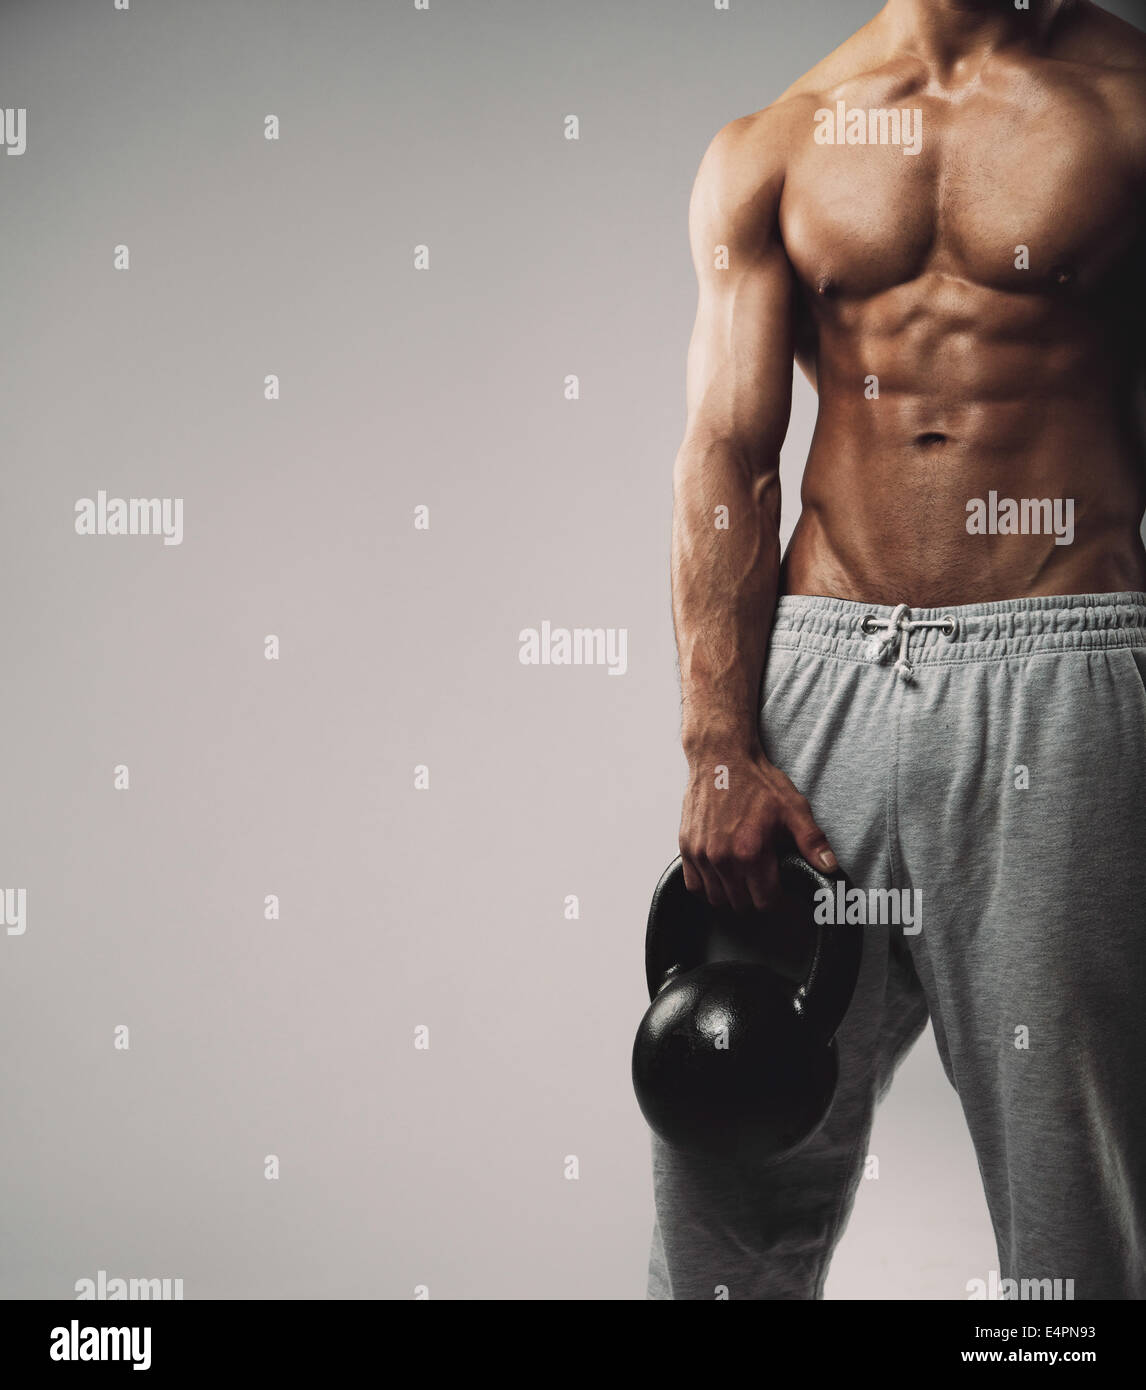 Cropped image of young man in sweatpants holding kettle bell. Crossfit workout theme on grey background work with - Stock Image